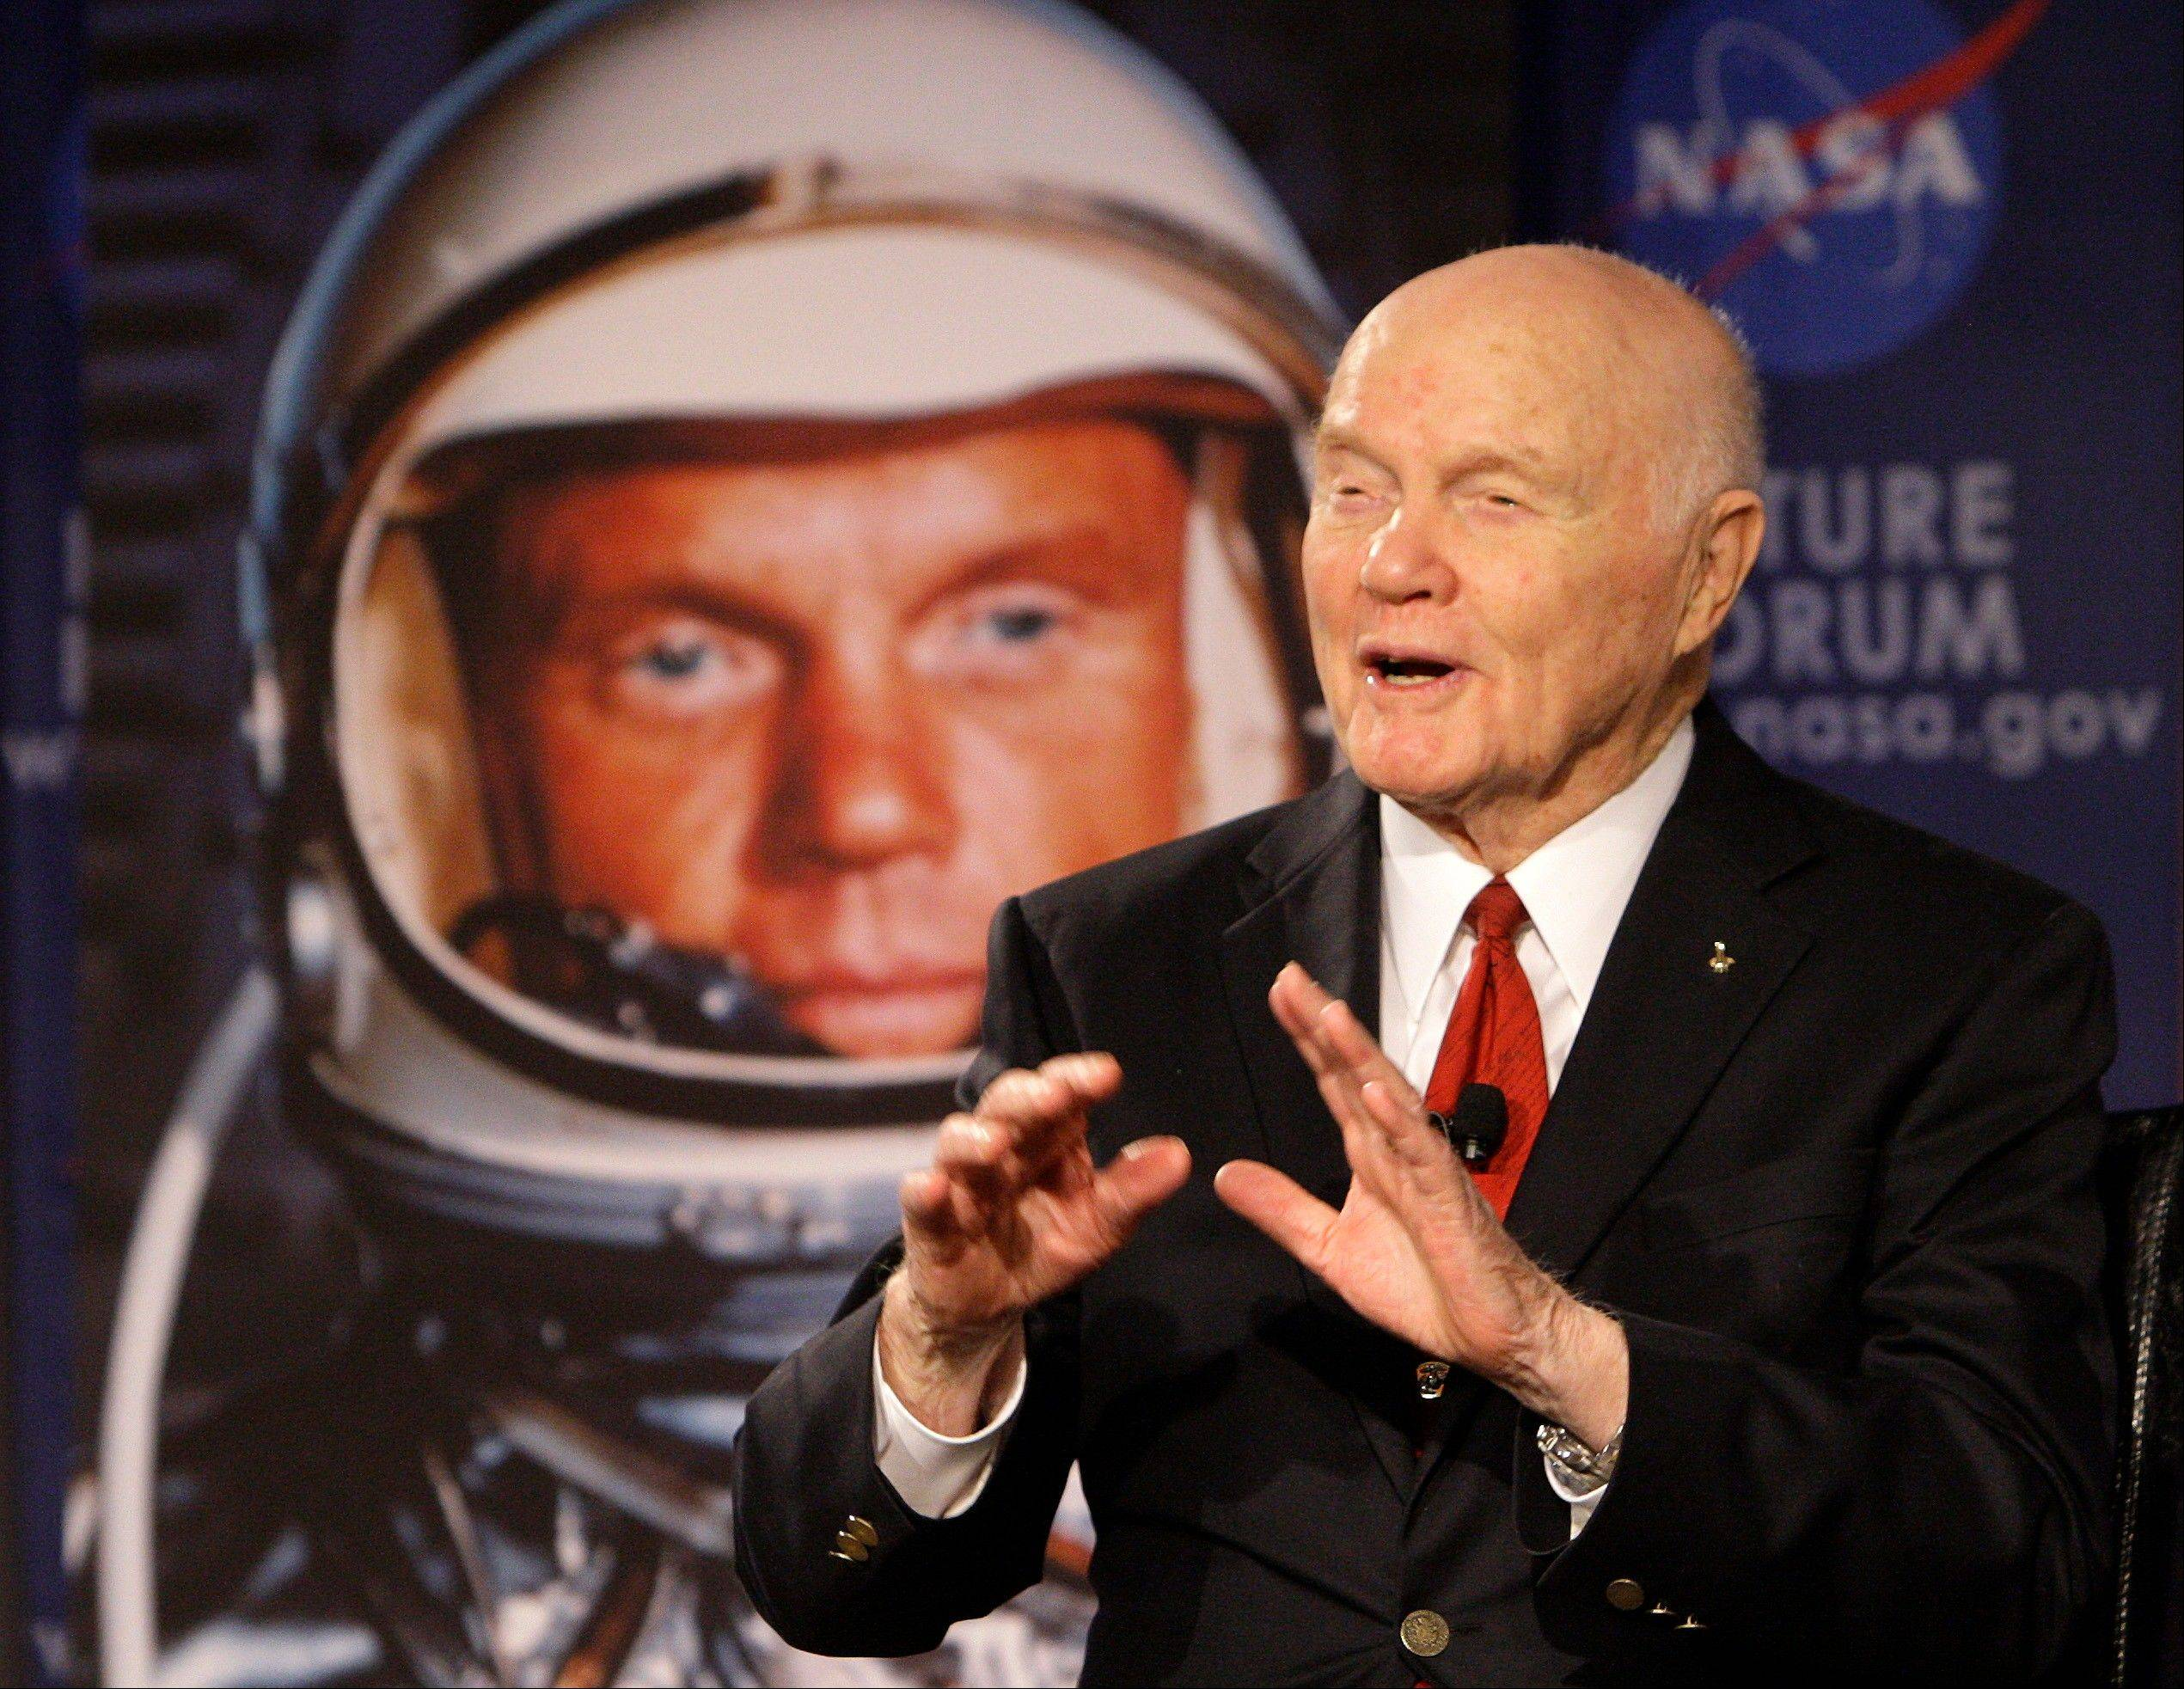 "Sen. John Glenn talks, via satellite, with the astronauts on the International Space Station, before the start of a roundtable discussion titled ""Learning from the Past to Innovate for the Future"" Monday, Feb. 20, 2012, in Columbus, Ohio. Glenn was the first American to orbit Earth, piloting Friendship 7 around it three times in 1962, and also became the oldest person in space, at age 77, by orbiting Earth with six astronauts aboard shuttle Discovery in 1998."